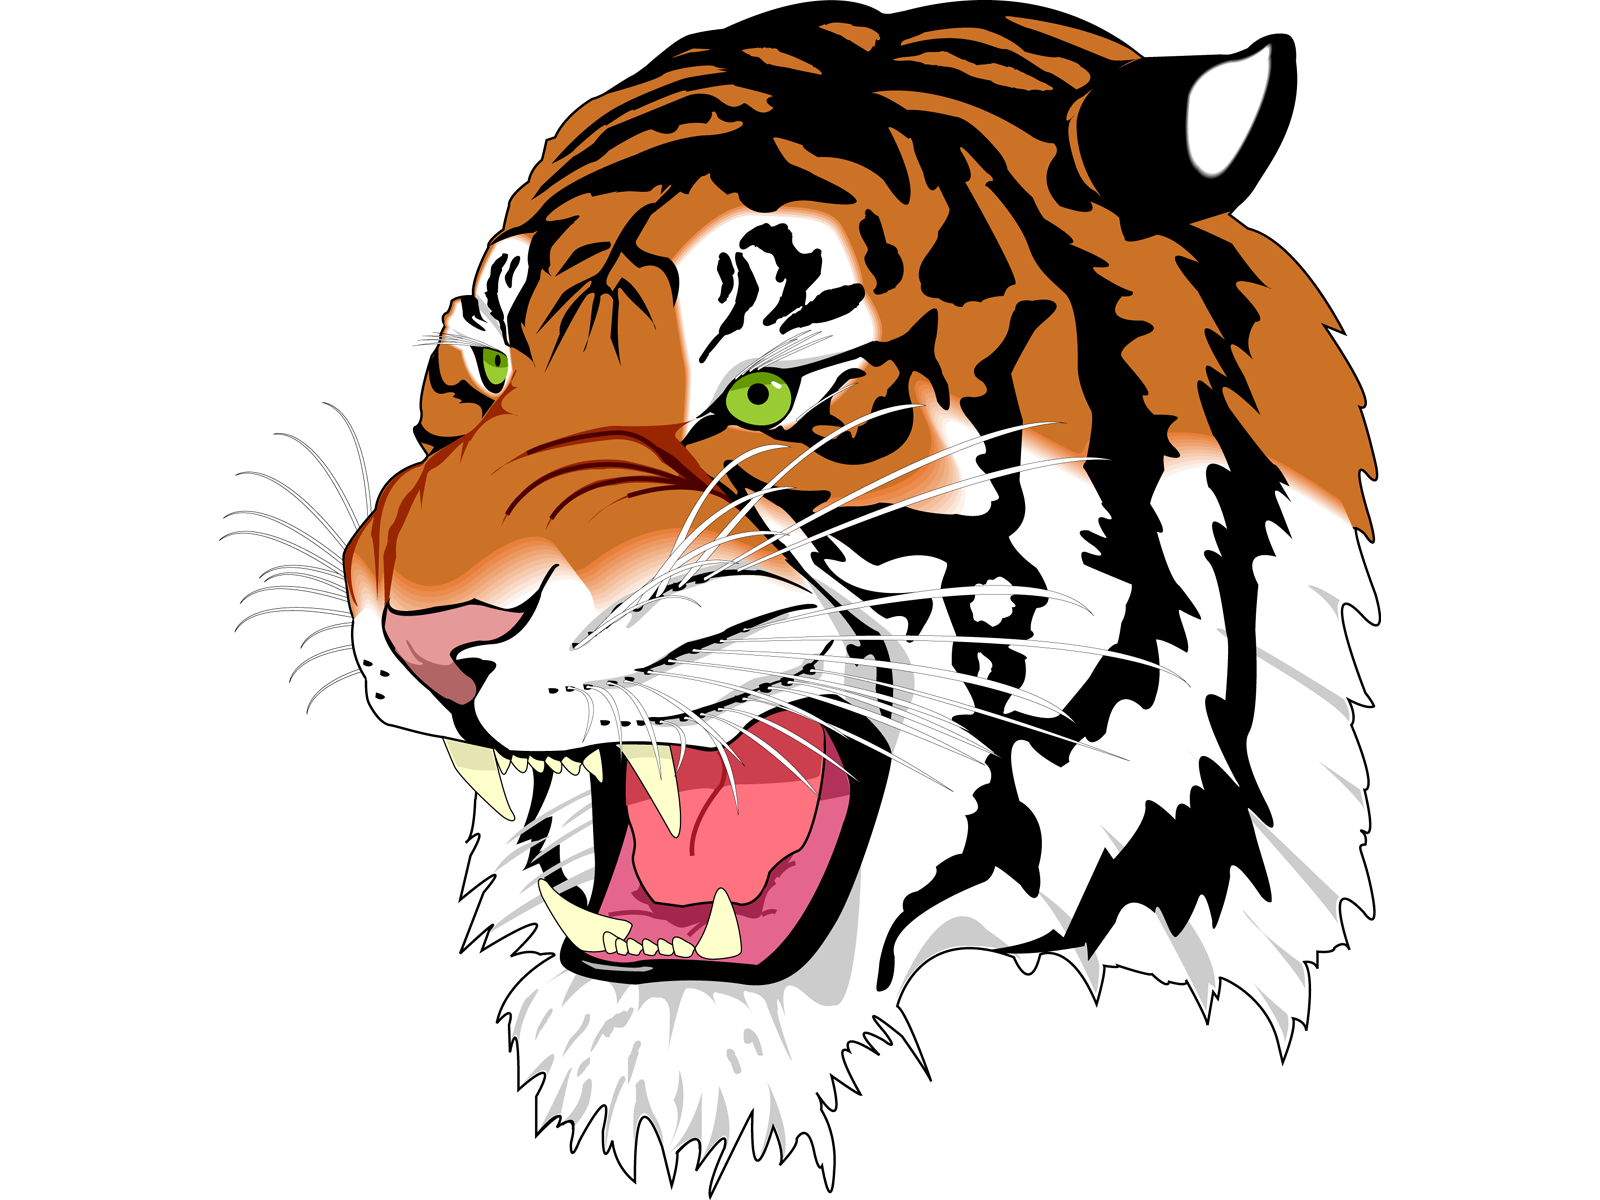 tiger face clipart at getdrawings com free for personal use tiger rh getdrawings com tiger face clipart black and white cute tiger face clip art